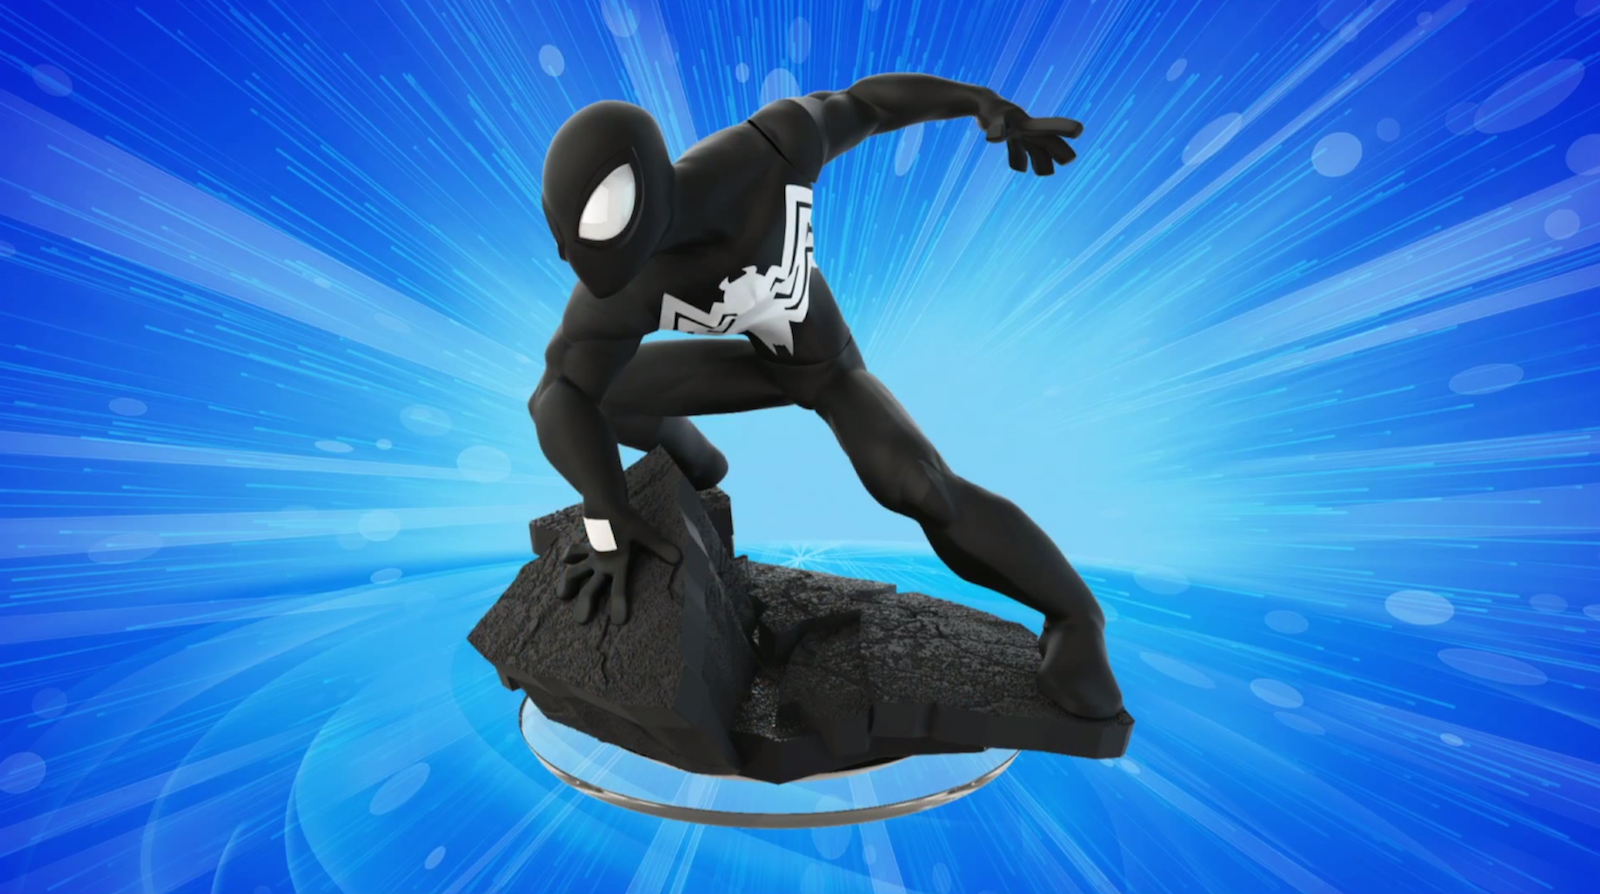 Disney Infinity 3.0 Black Suit Spider-Man Variant To Be Released Individually Soon